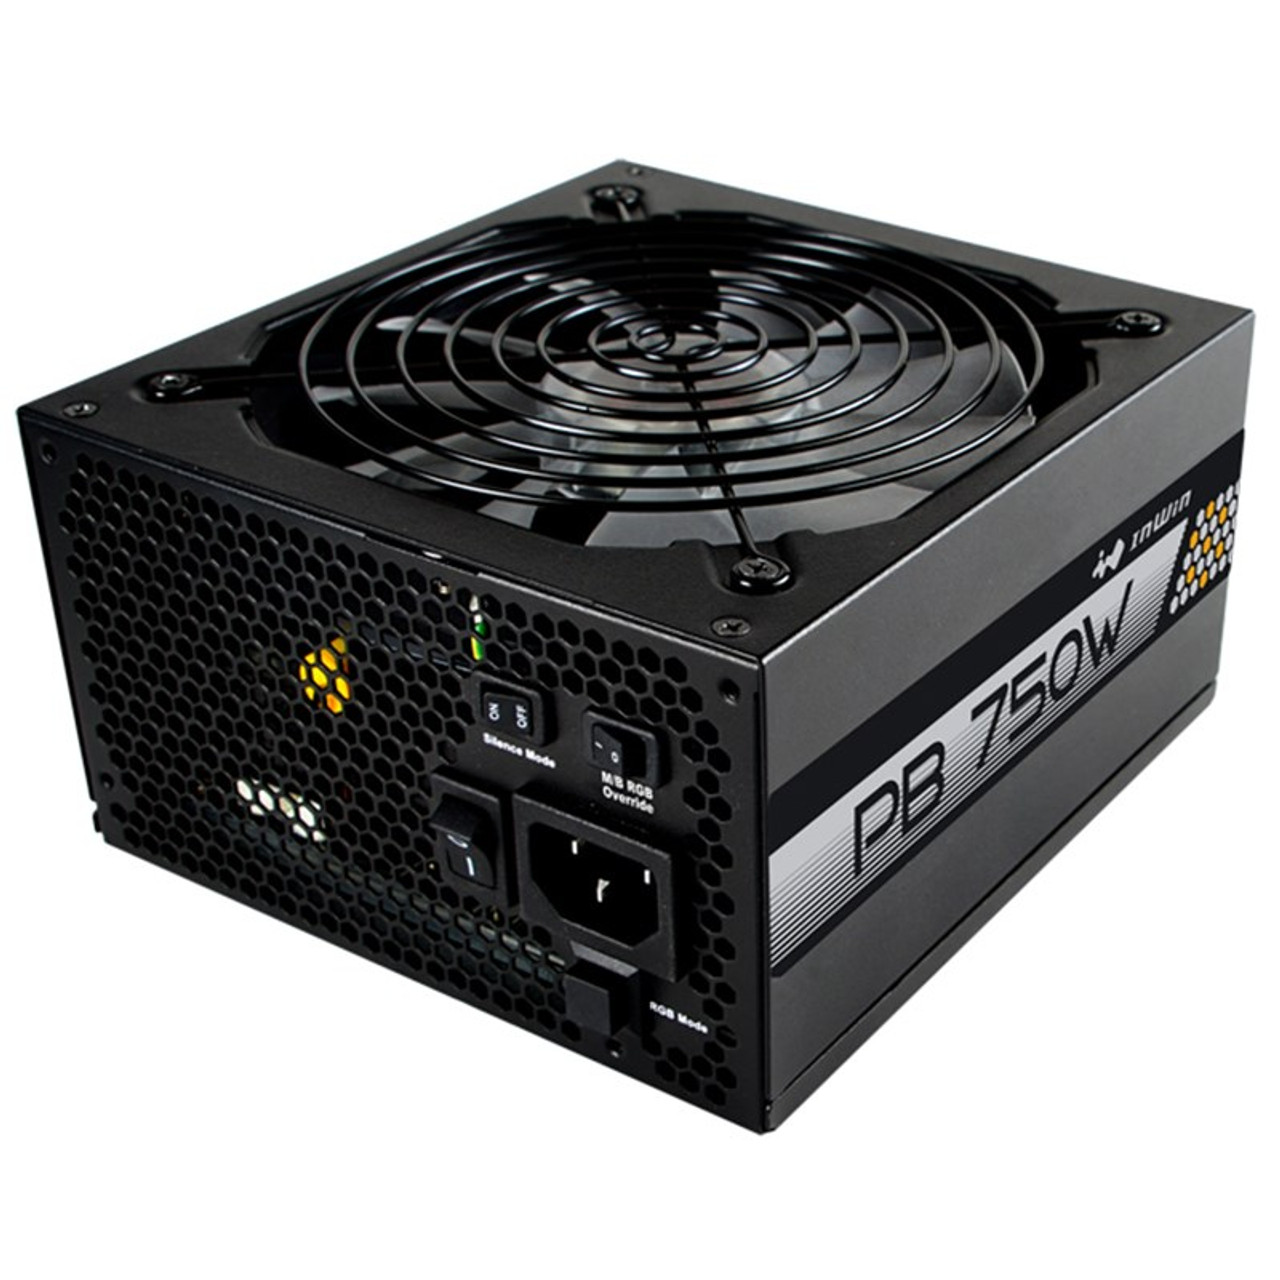 Image for In Win PB-750W 750W 80+ Gold Full-Modular RGB Power Supply CX Computer Superstore